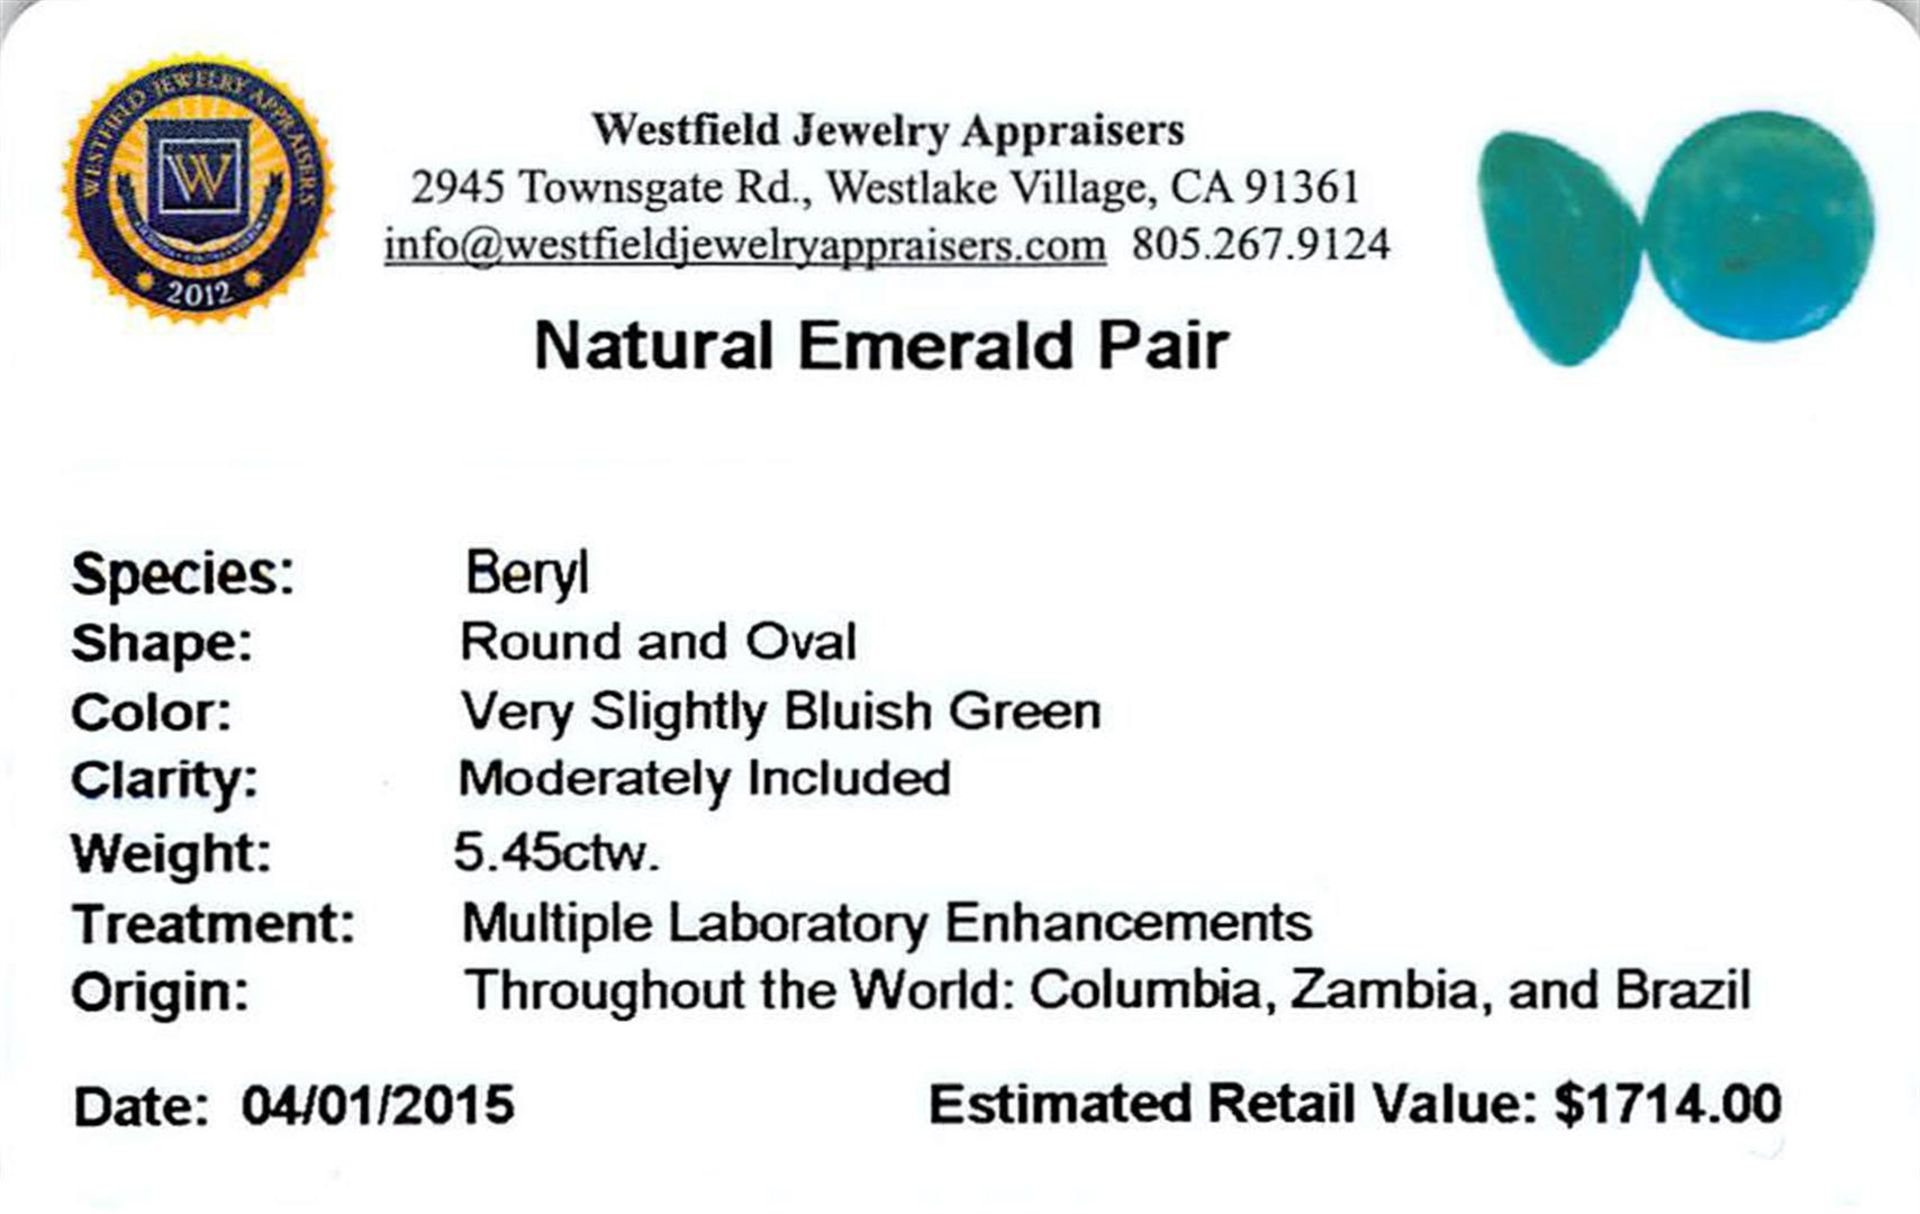 5.45ctw Fancy Mixed Emerald Parcel - Image 2 of 2